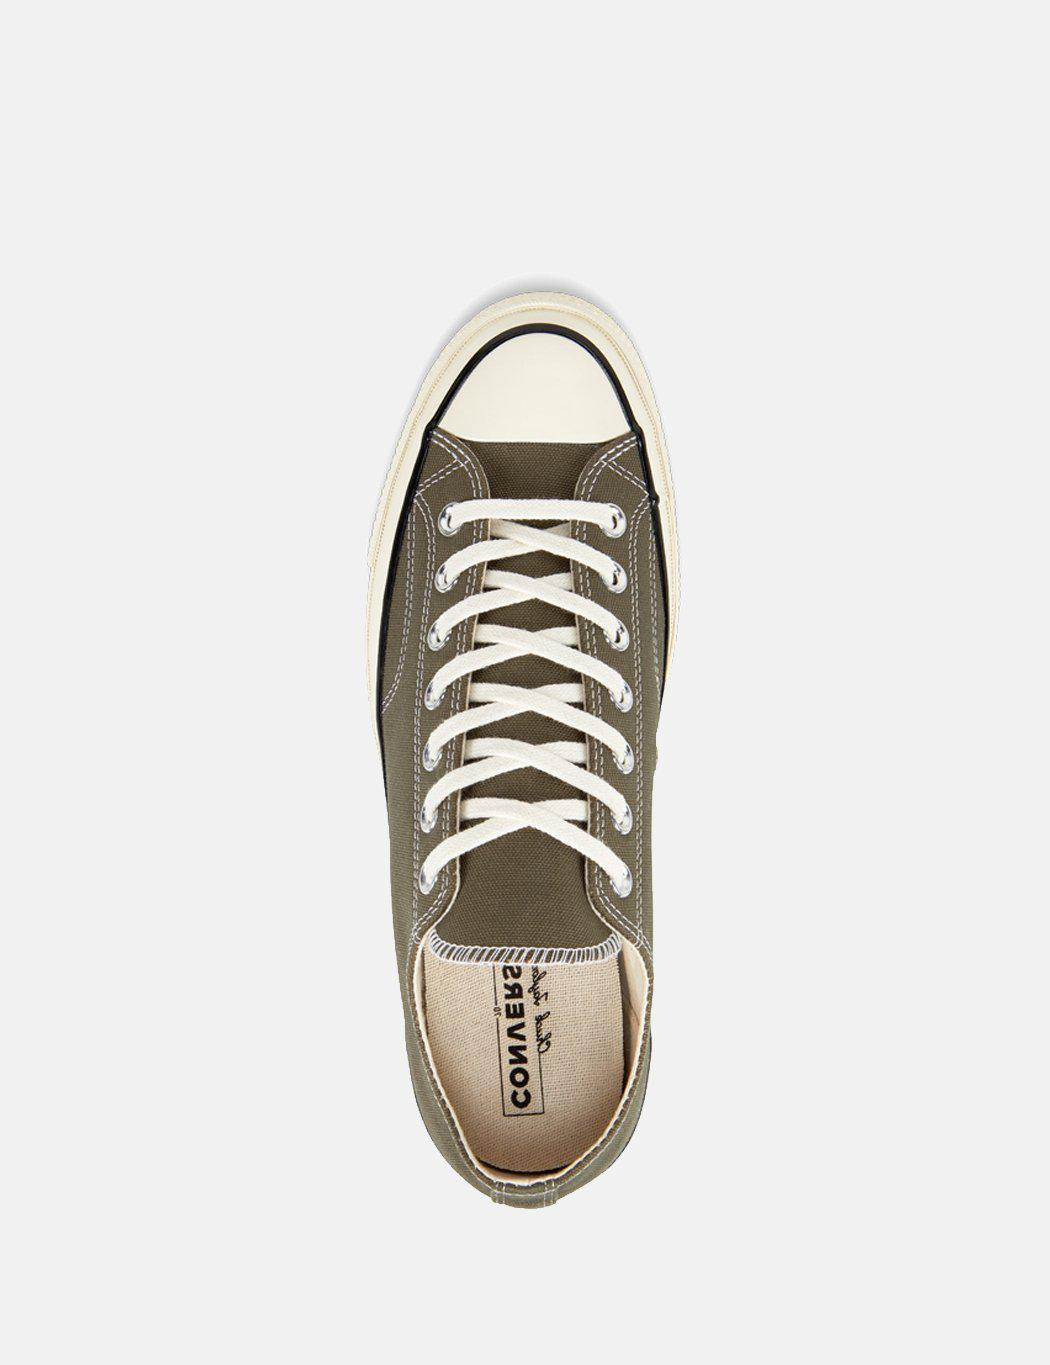 7fd289c8bf1f7f Lyst - Converse 70 s Chuck Low 162060c (canvas) in Green for Men